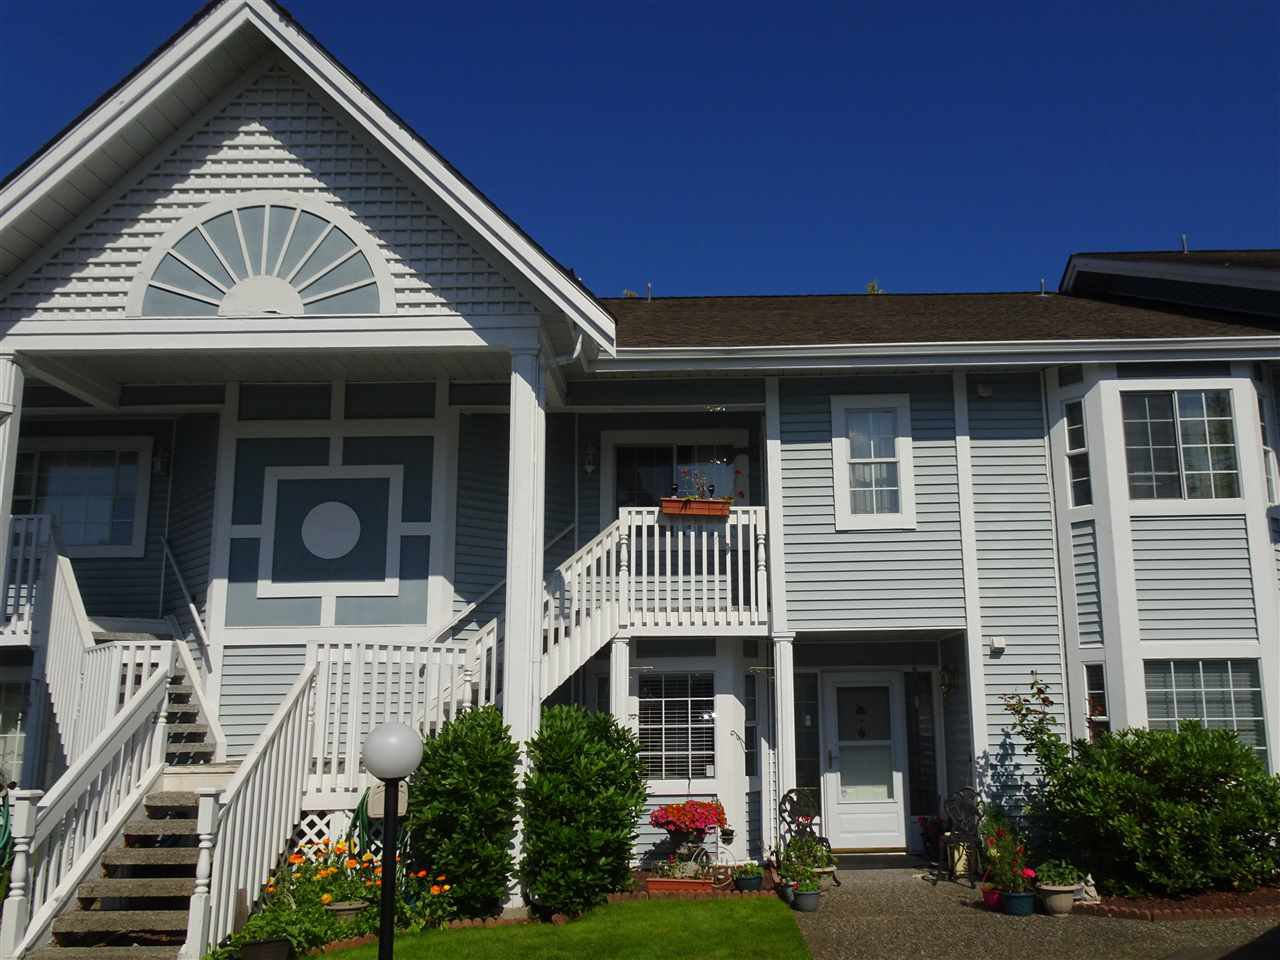 """Main Photo: 104 9105 154 Street in Surrey: Fleetwood Tynehead Townhouse for sale in """"Lexington Square"""" : MLS®# R2468179"""